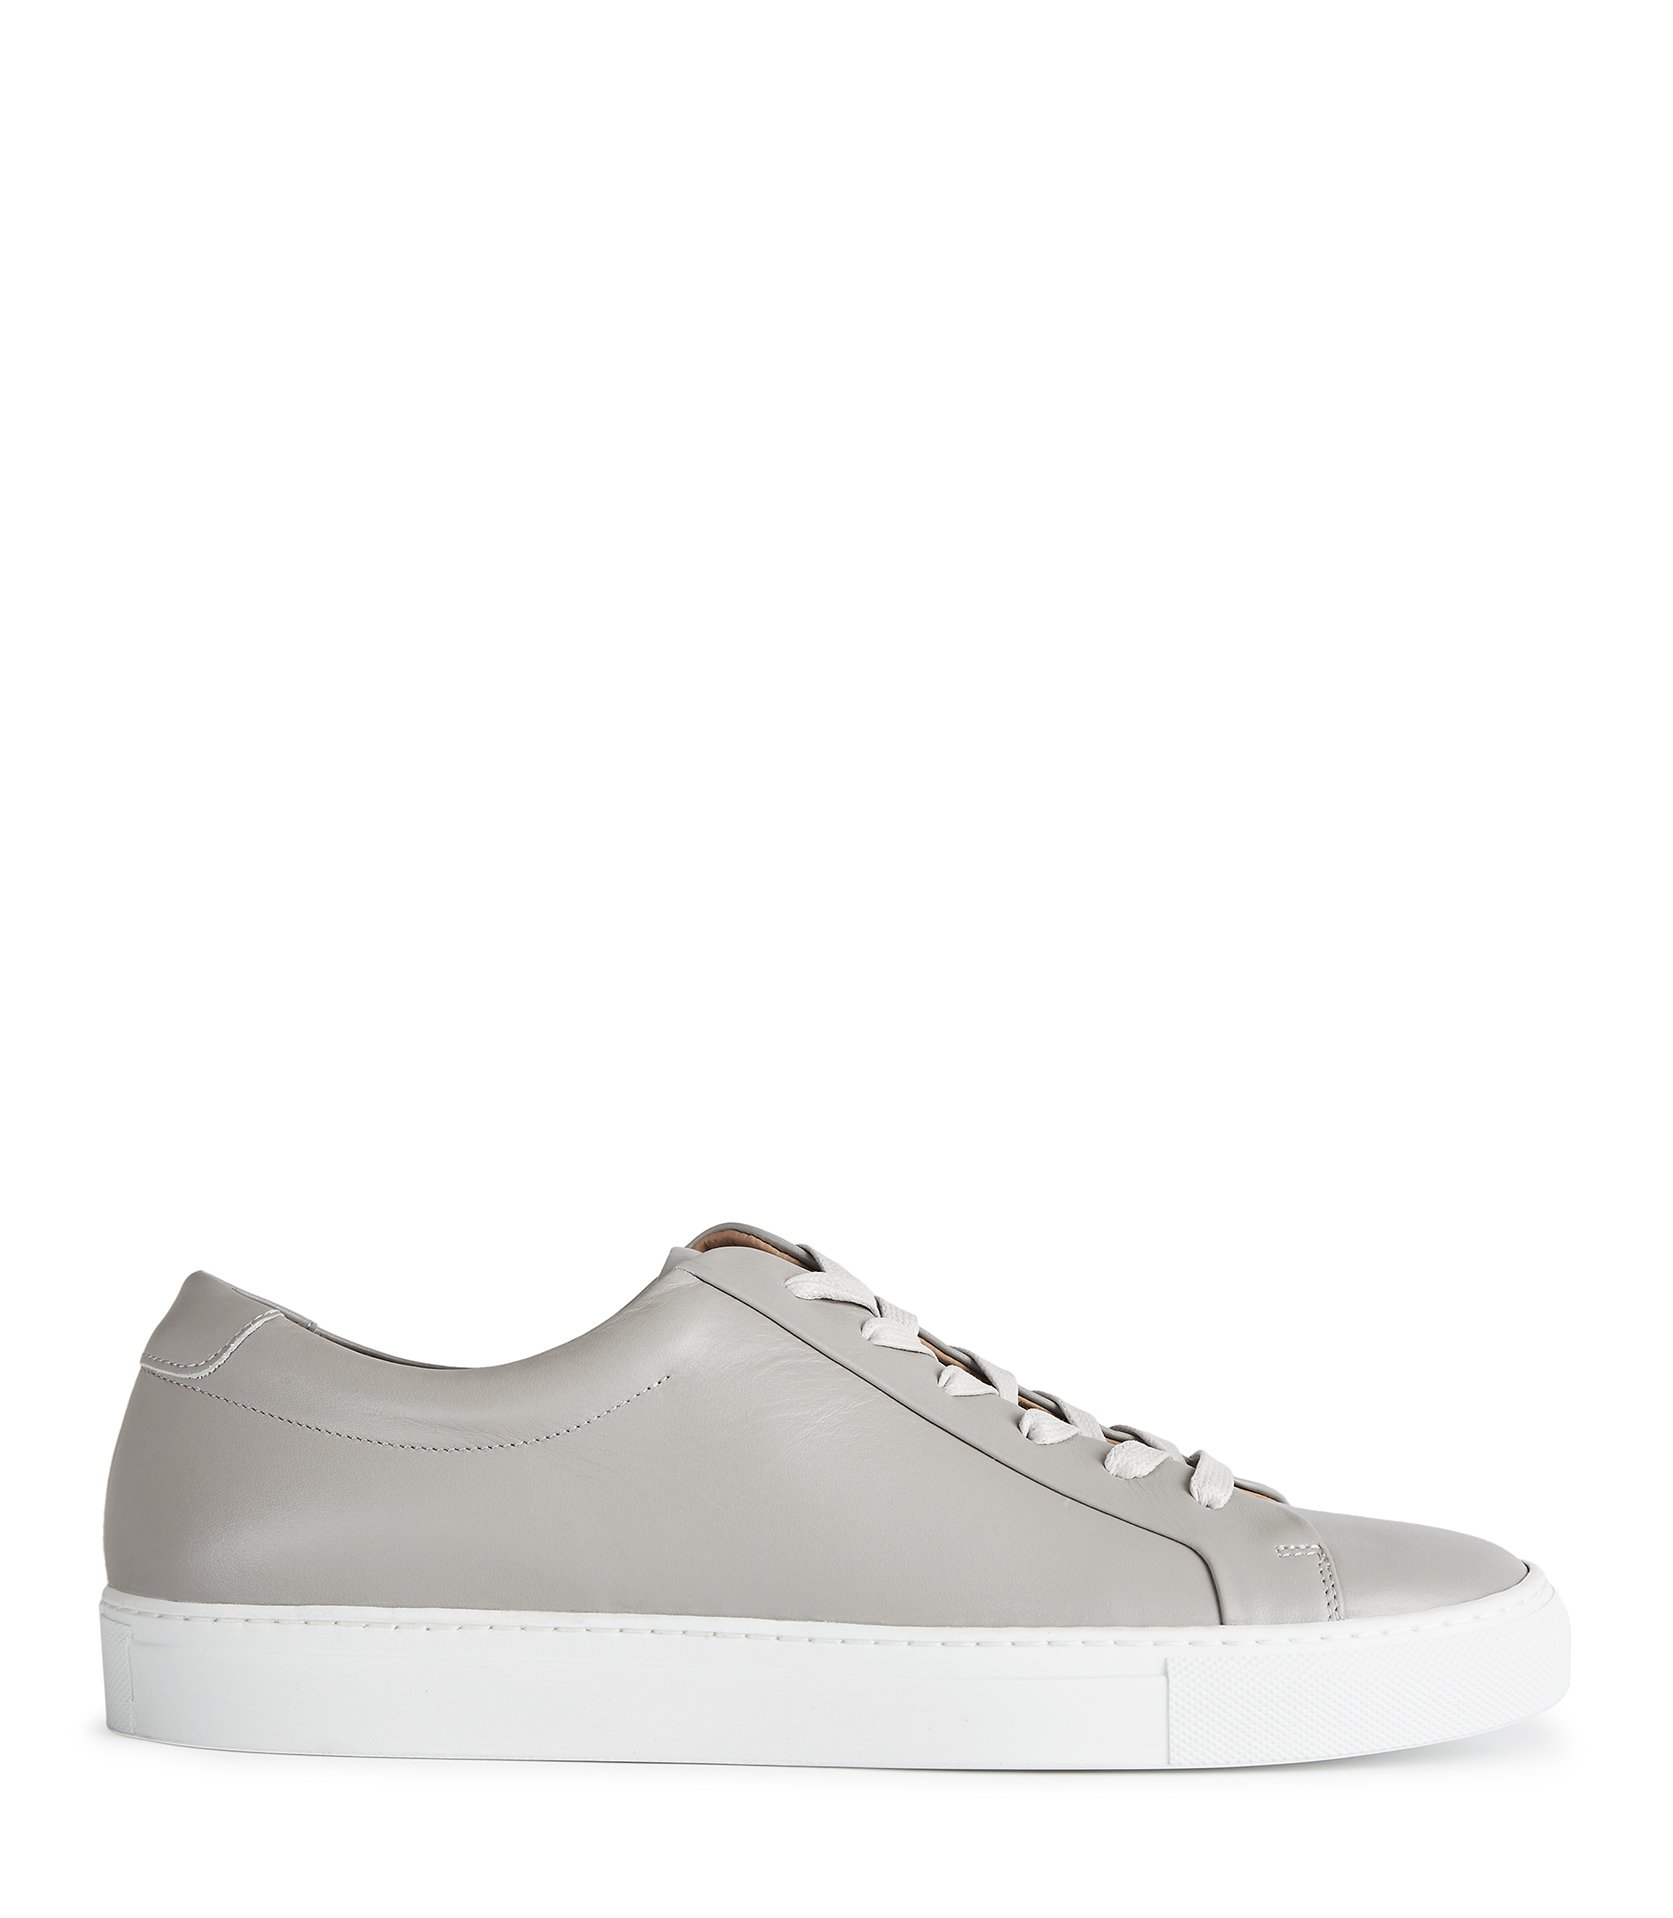 Reiss Grey Darren Leather Sneakers